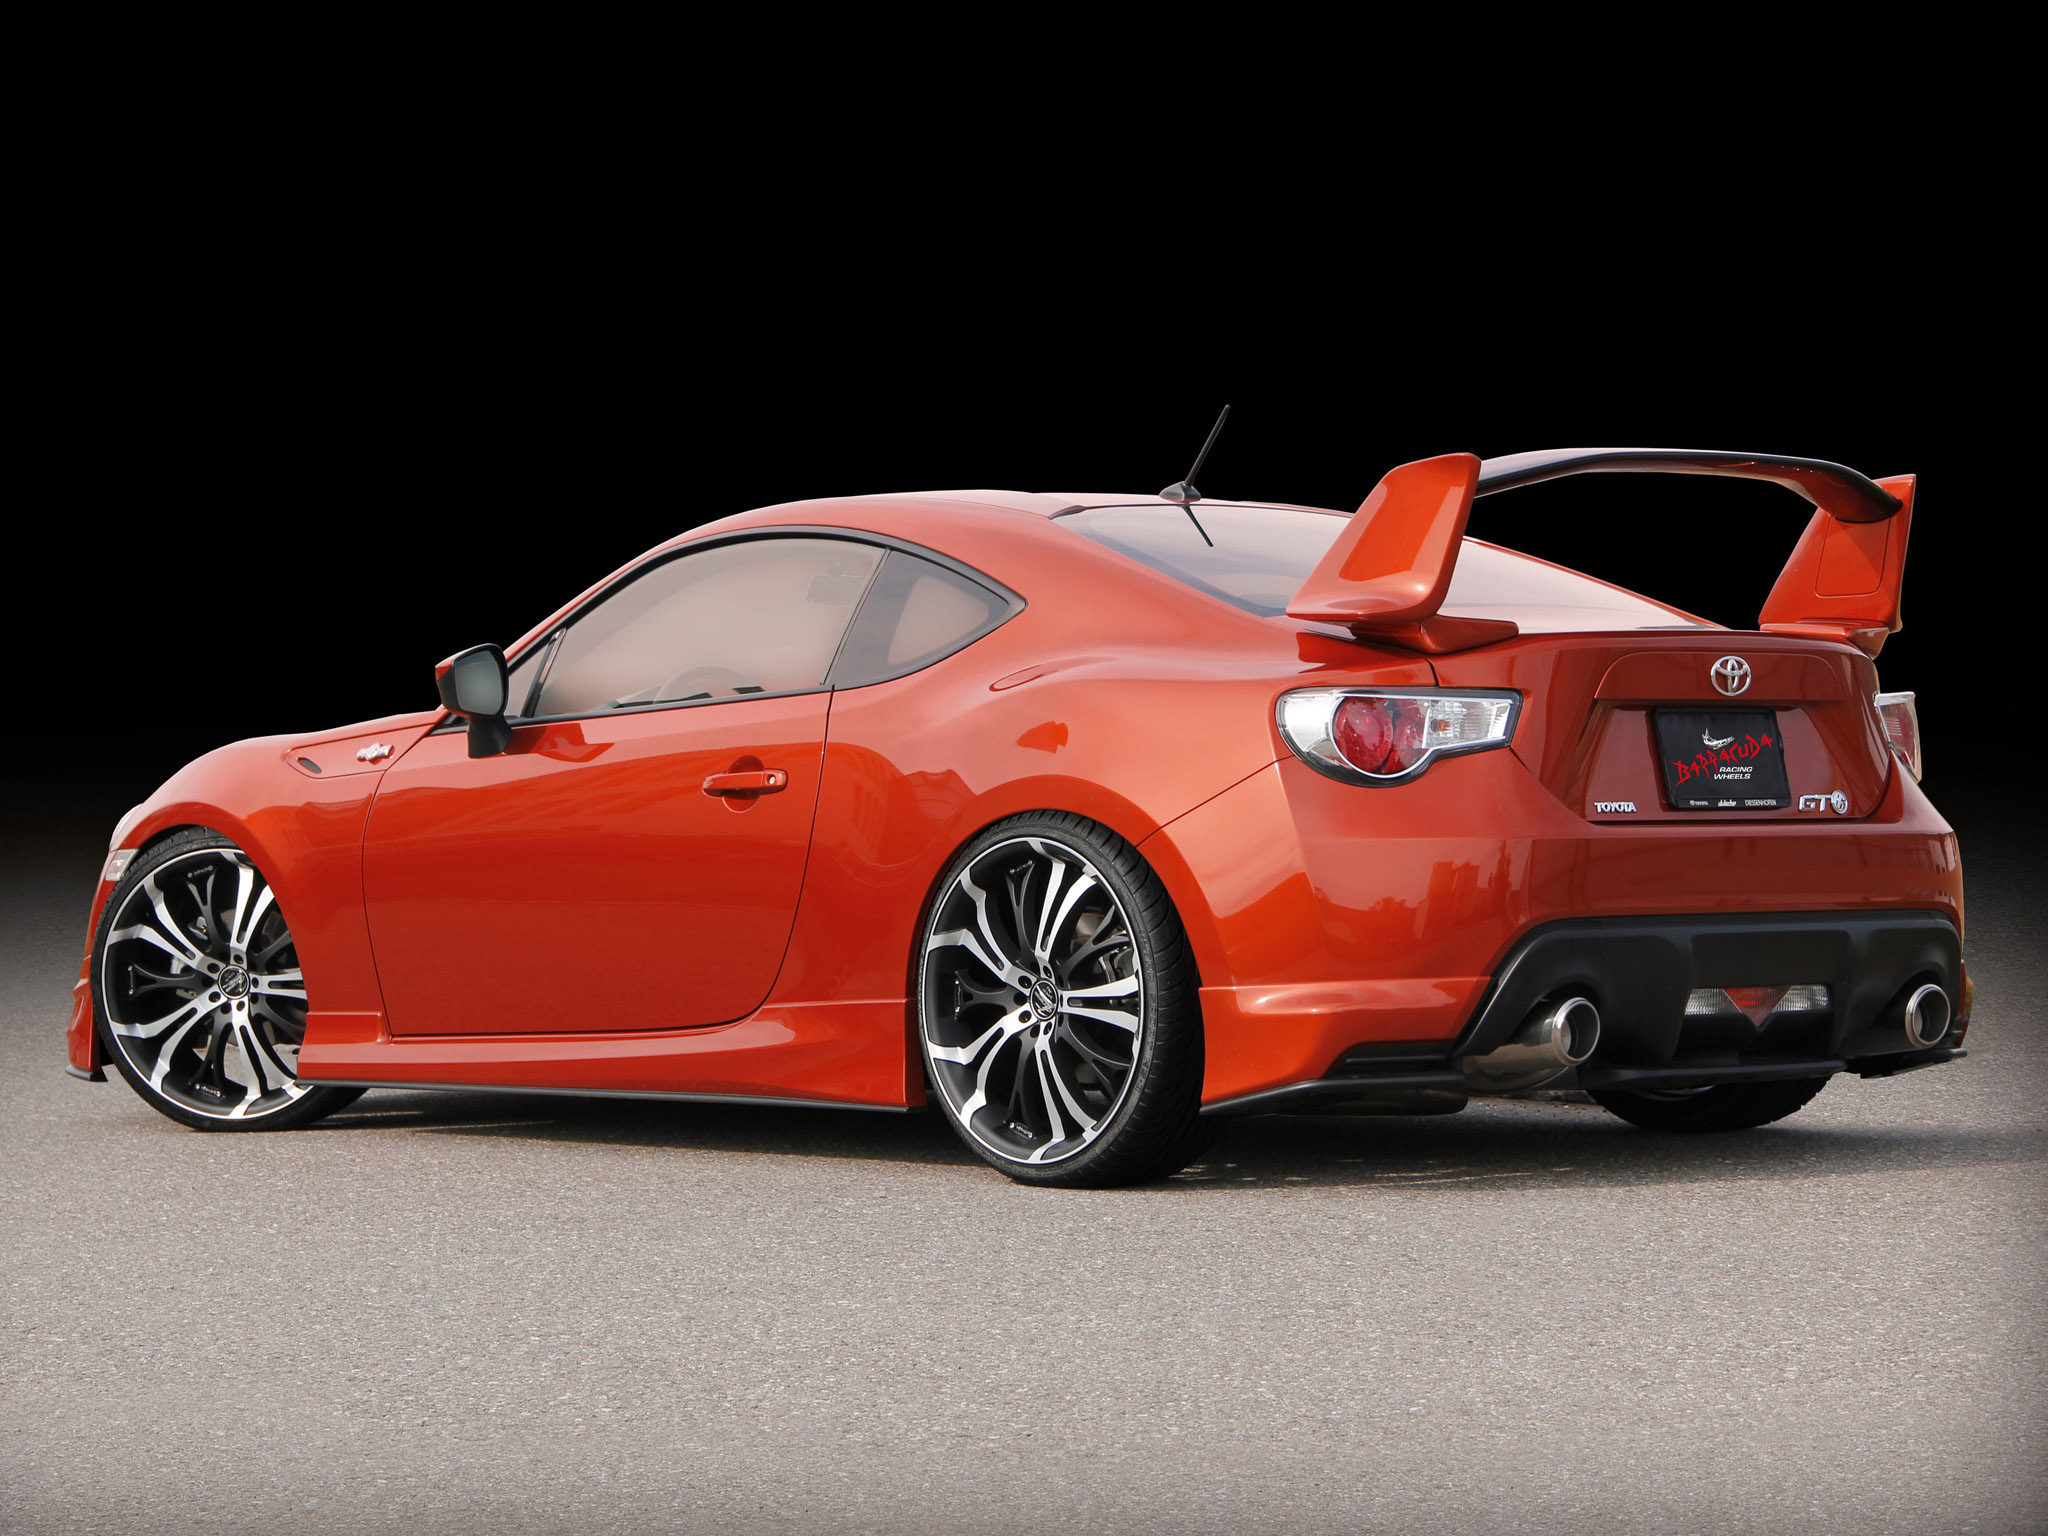 2012 toyota gt 86 g t tuning f wallpaper 2048x1536 107437 wallpaperup. Black Bedroom Furniture Sets. Home Design Ideas